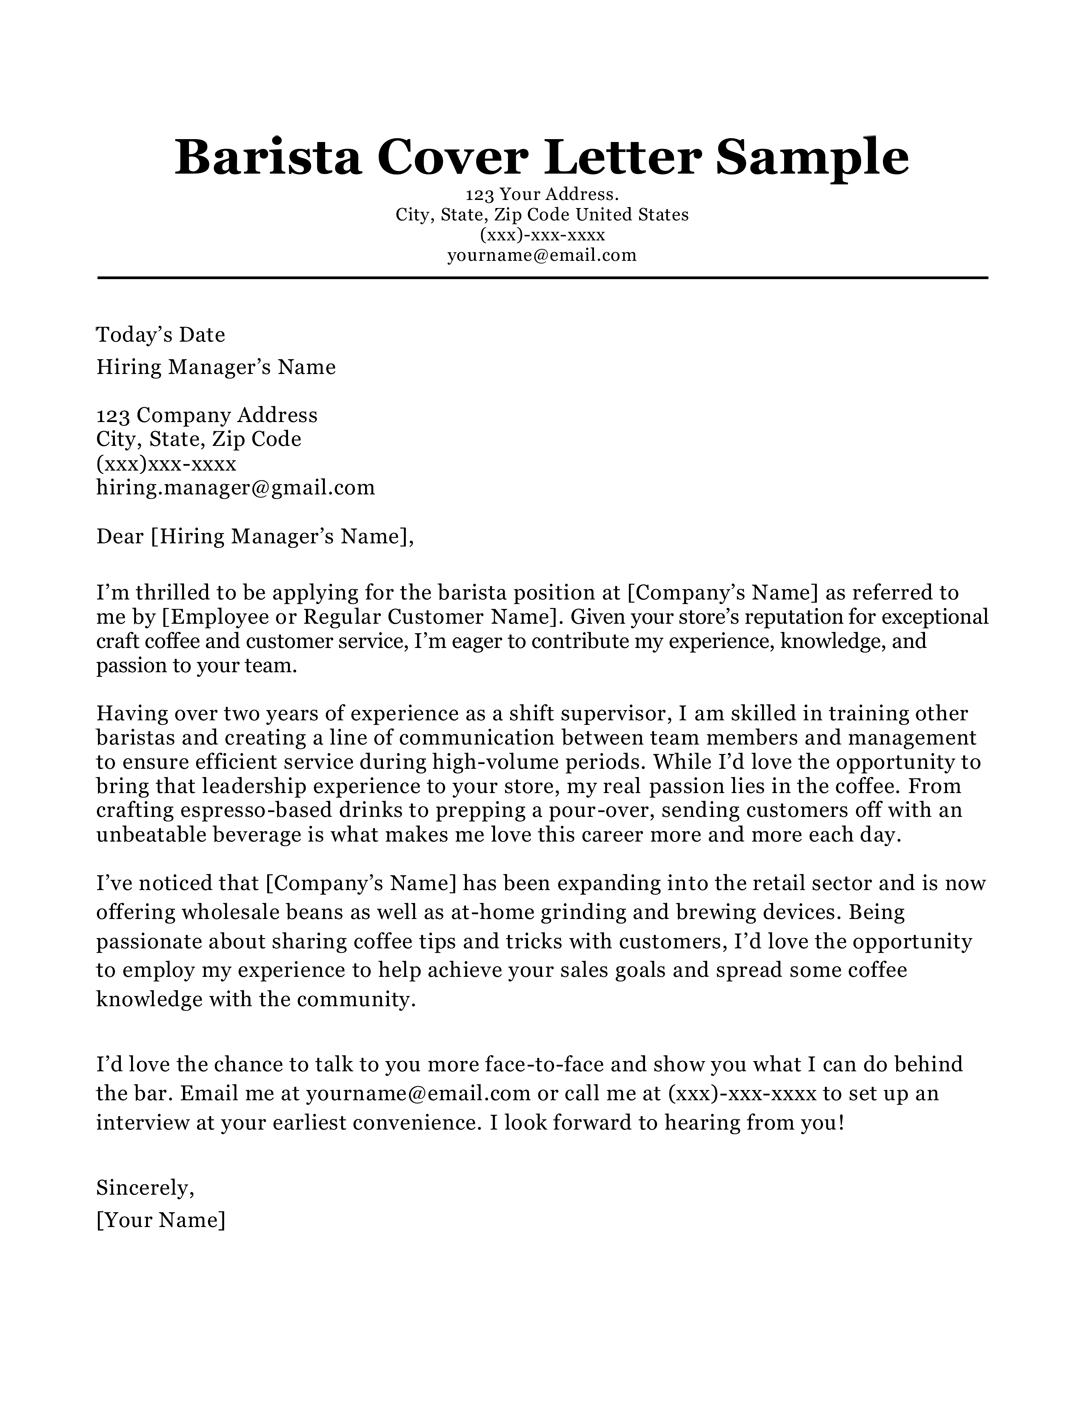 Cover Letter Email Examples from resumecompanion.com